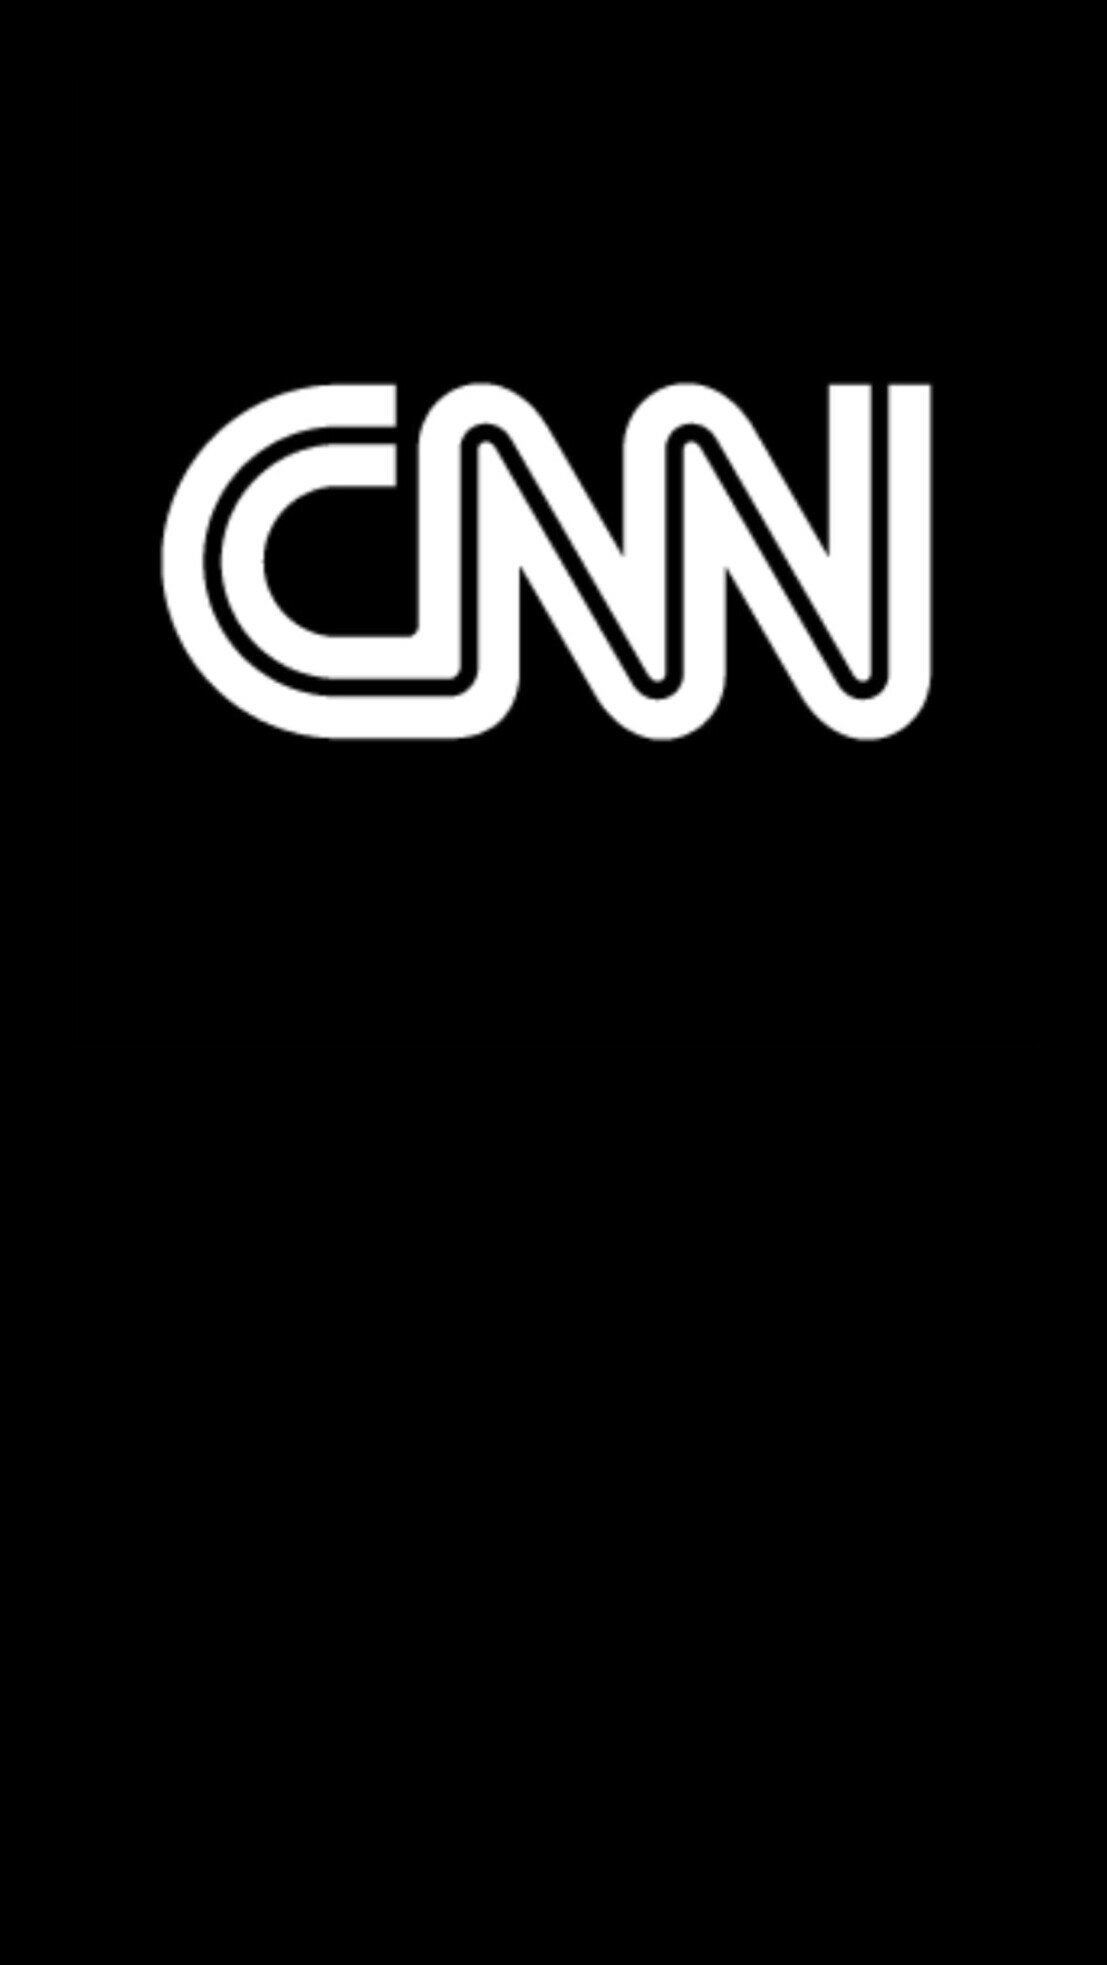 1107x1965 #cnn #black #wallpaper #android #iphone